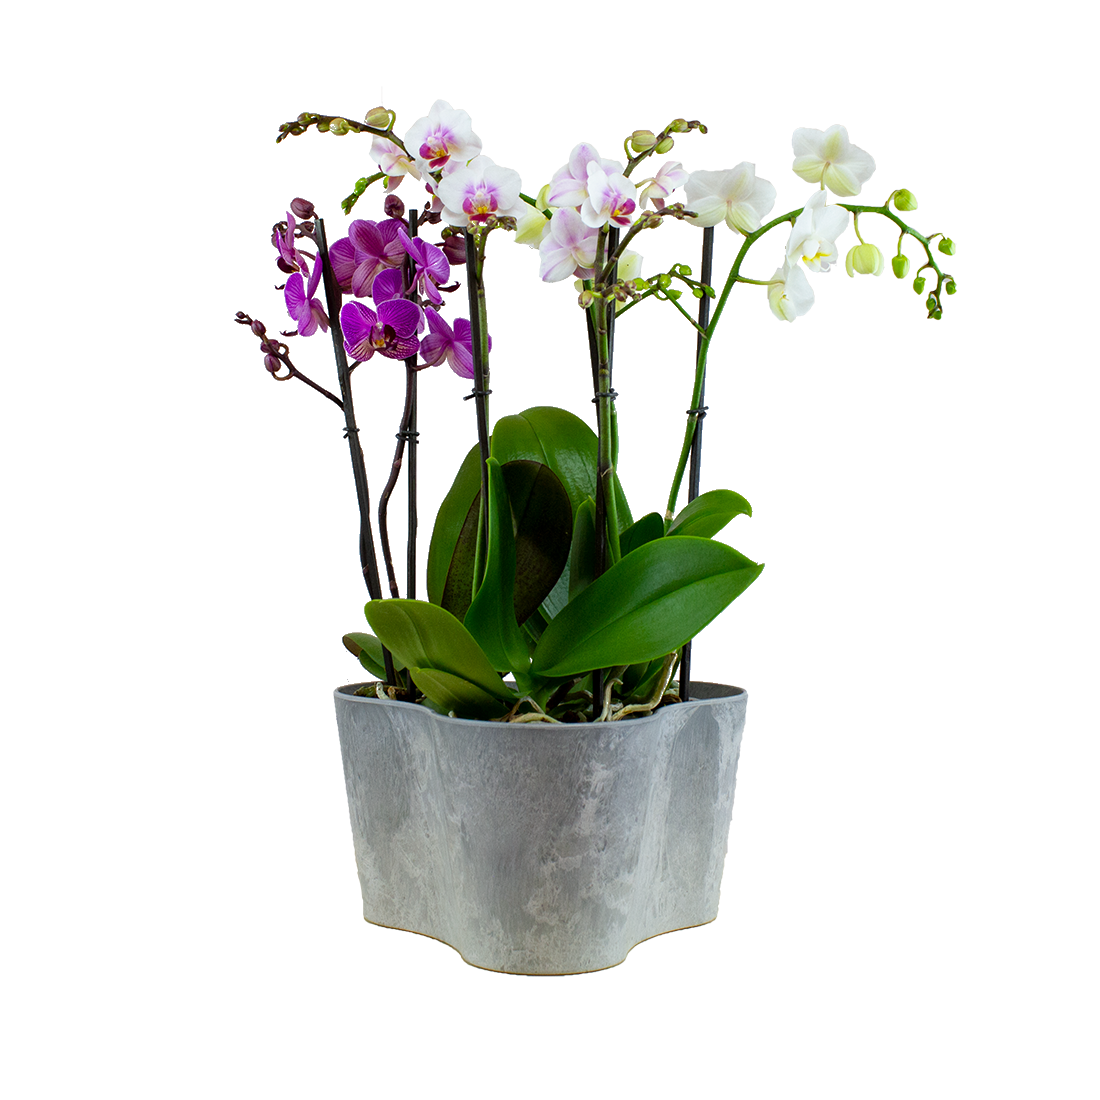 Orchids – 3 × Butterfly orchid, Butterfly orchid, Orchid in grey plastic pot as a set – Height: 48 cm, 2 stems